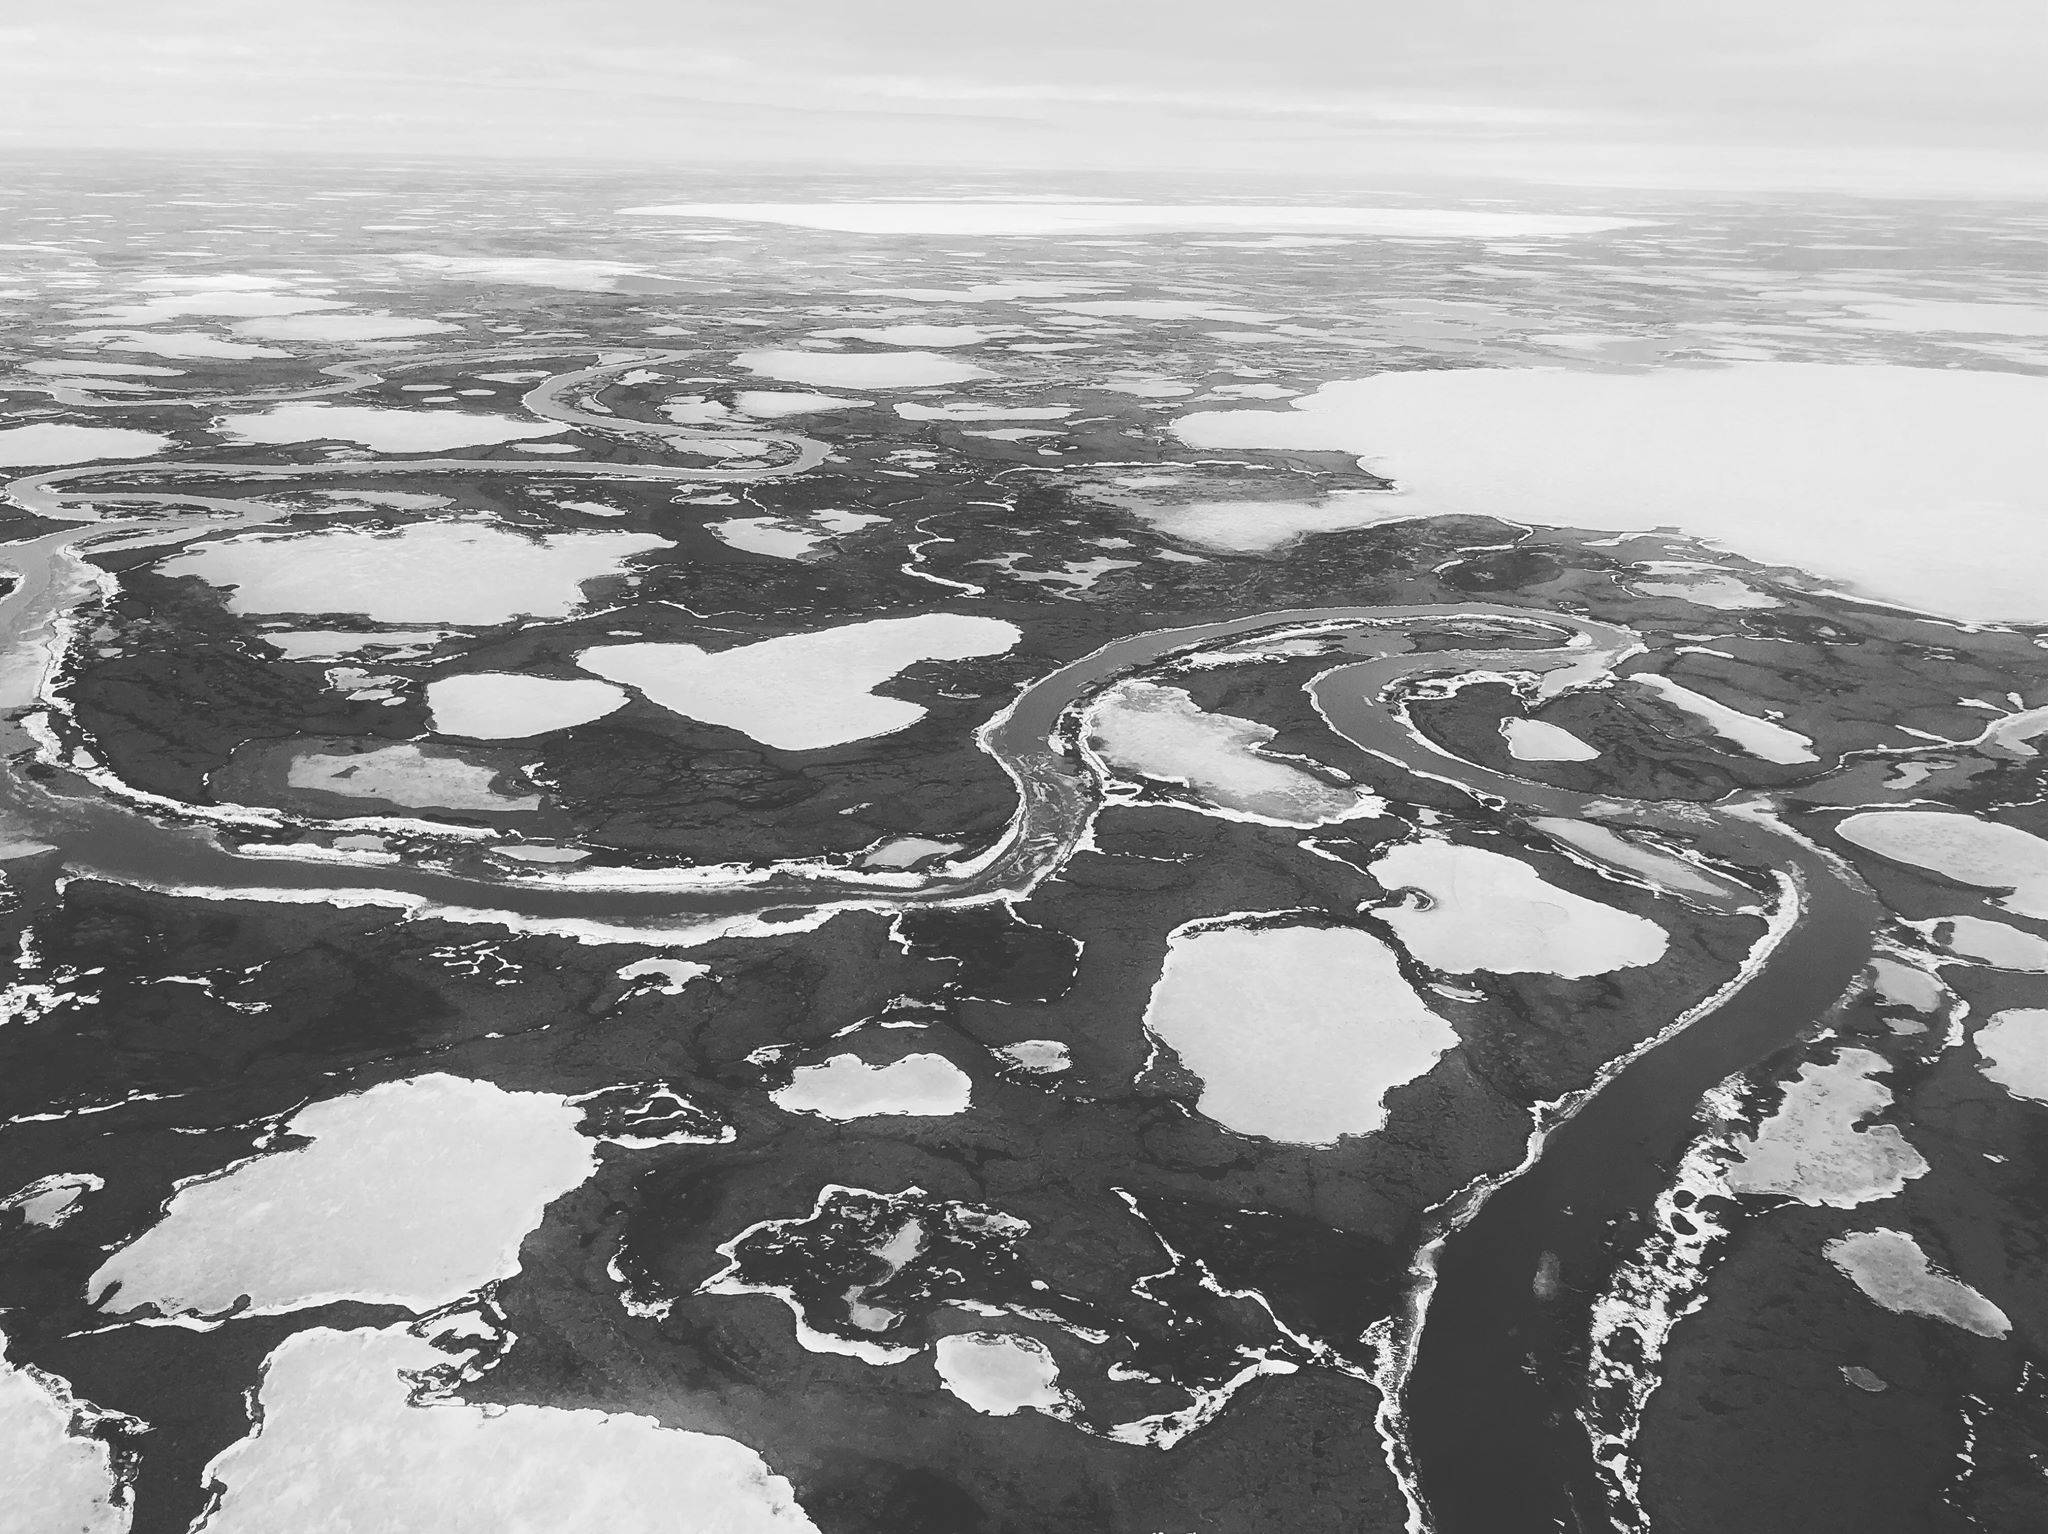 Flying over western Alaska, home to numerous Yup'ik communities, April 15, 2019. (Photo by Victoria Petersen/Peninsula Clarion)